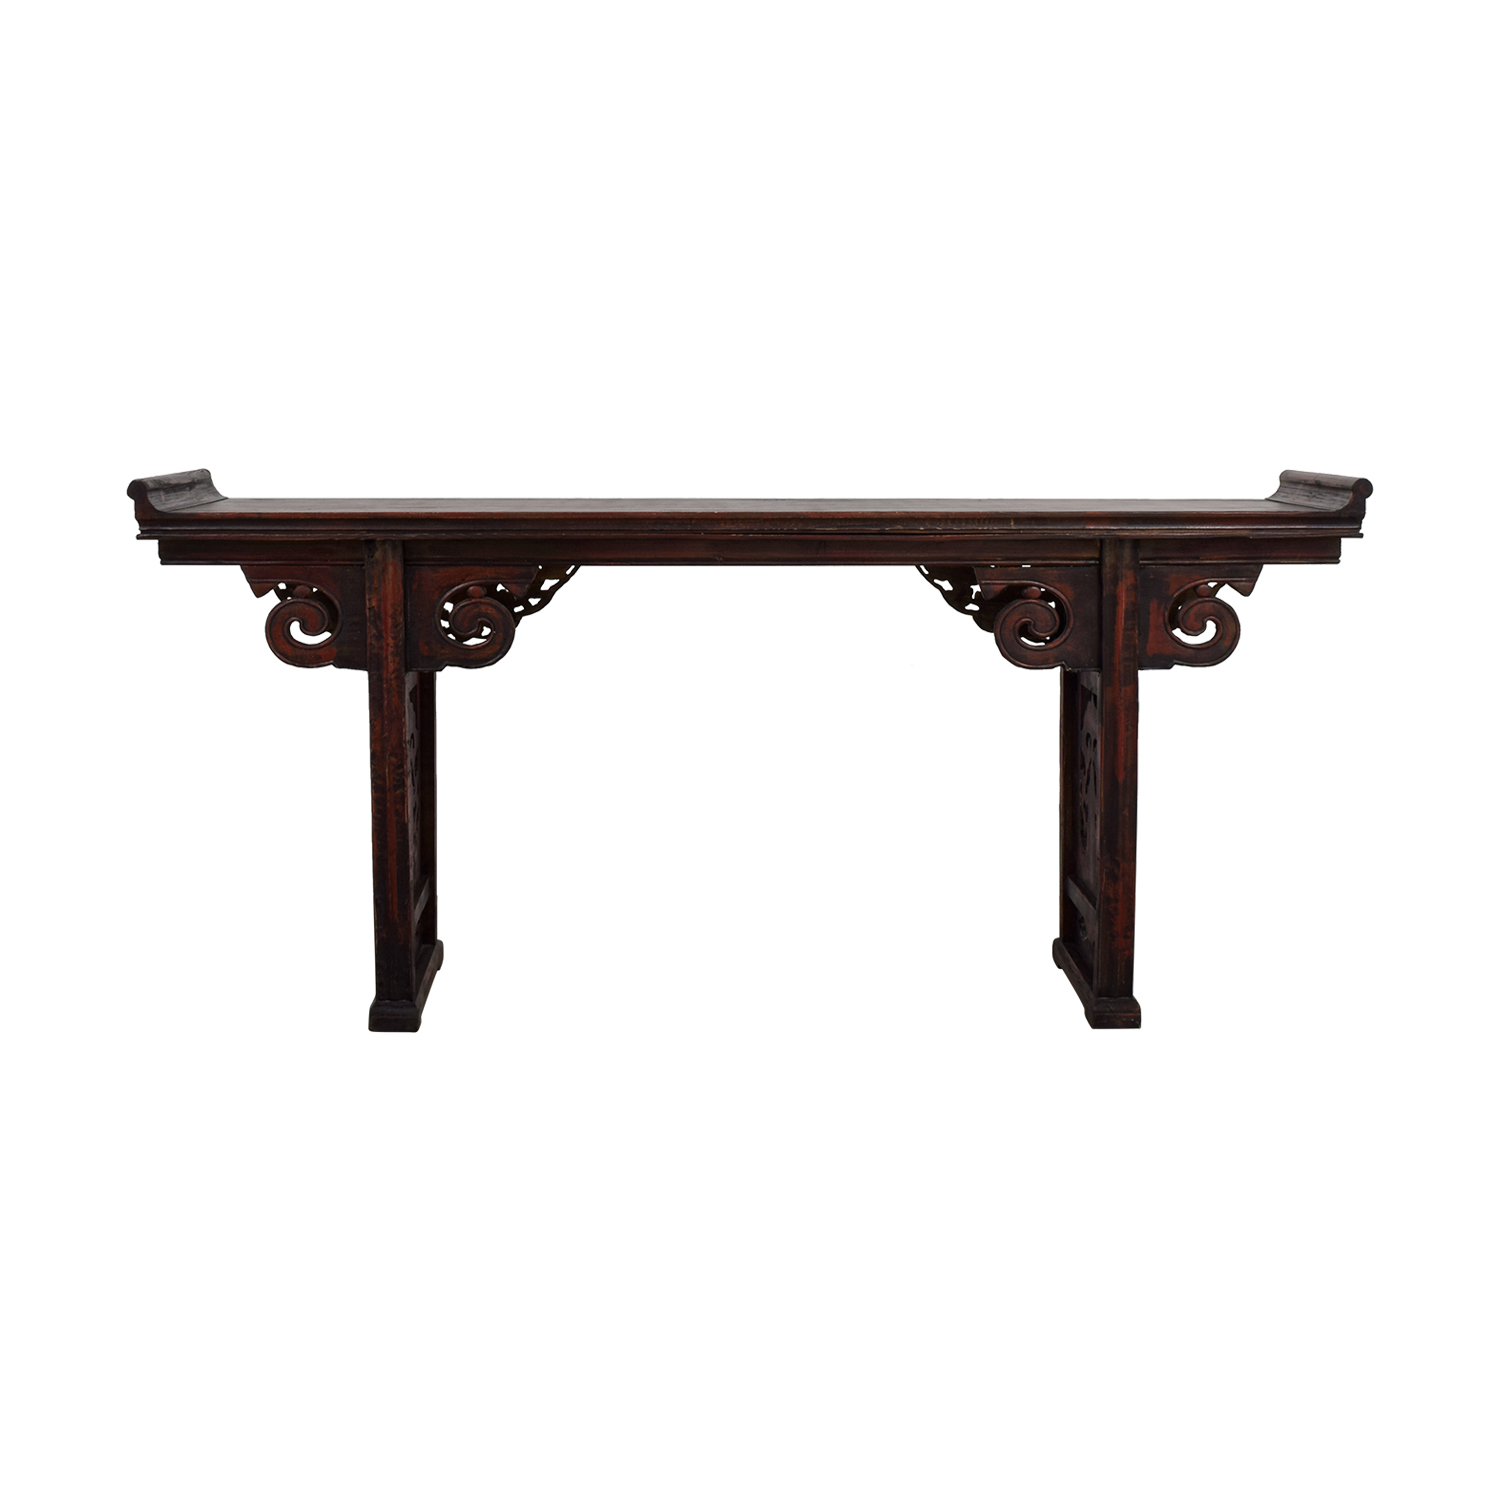 Arhaus Arhaus Carved Wood Altar Table RED AND BLACK WOOD